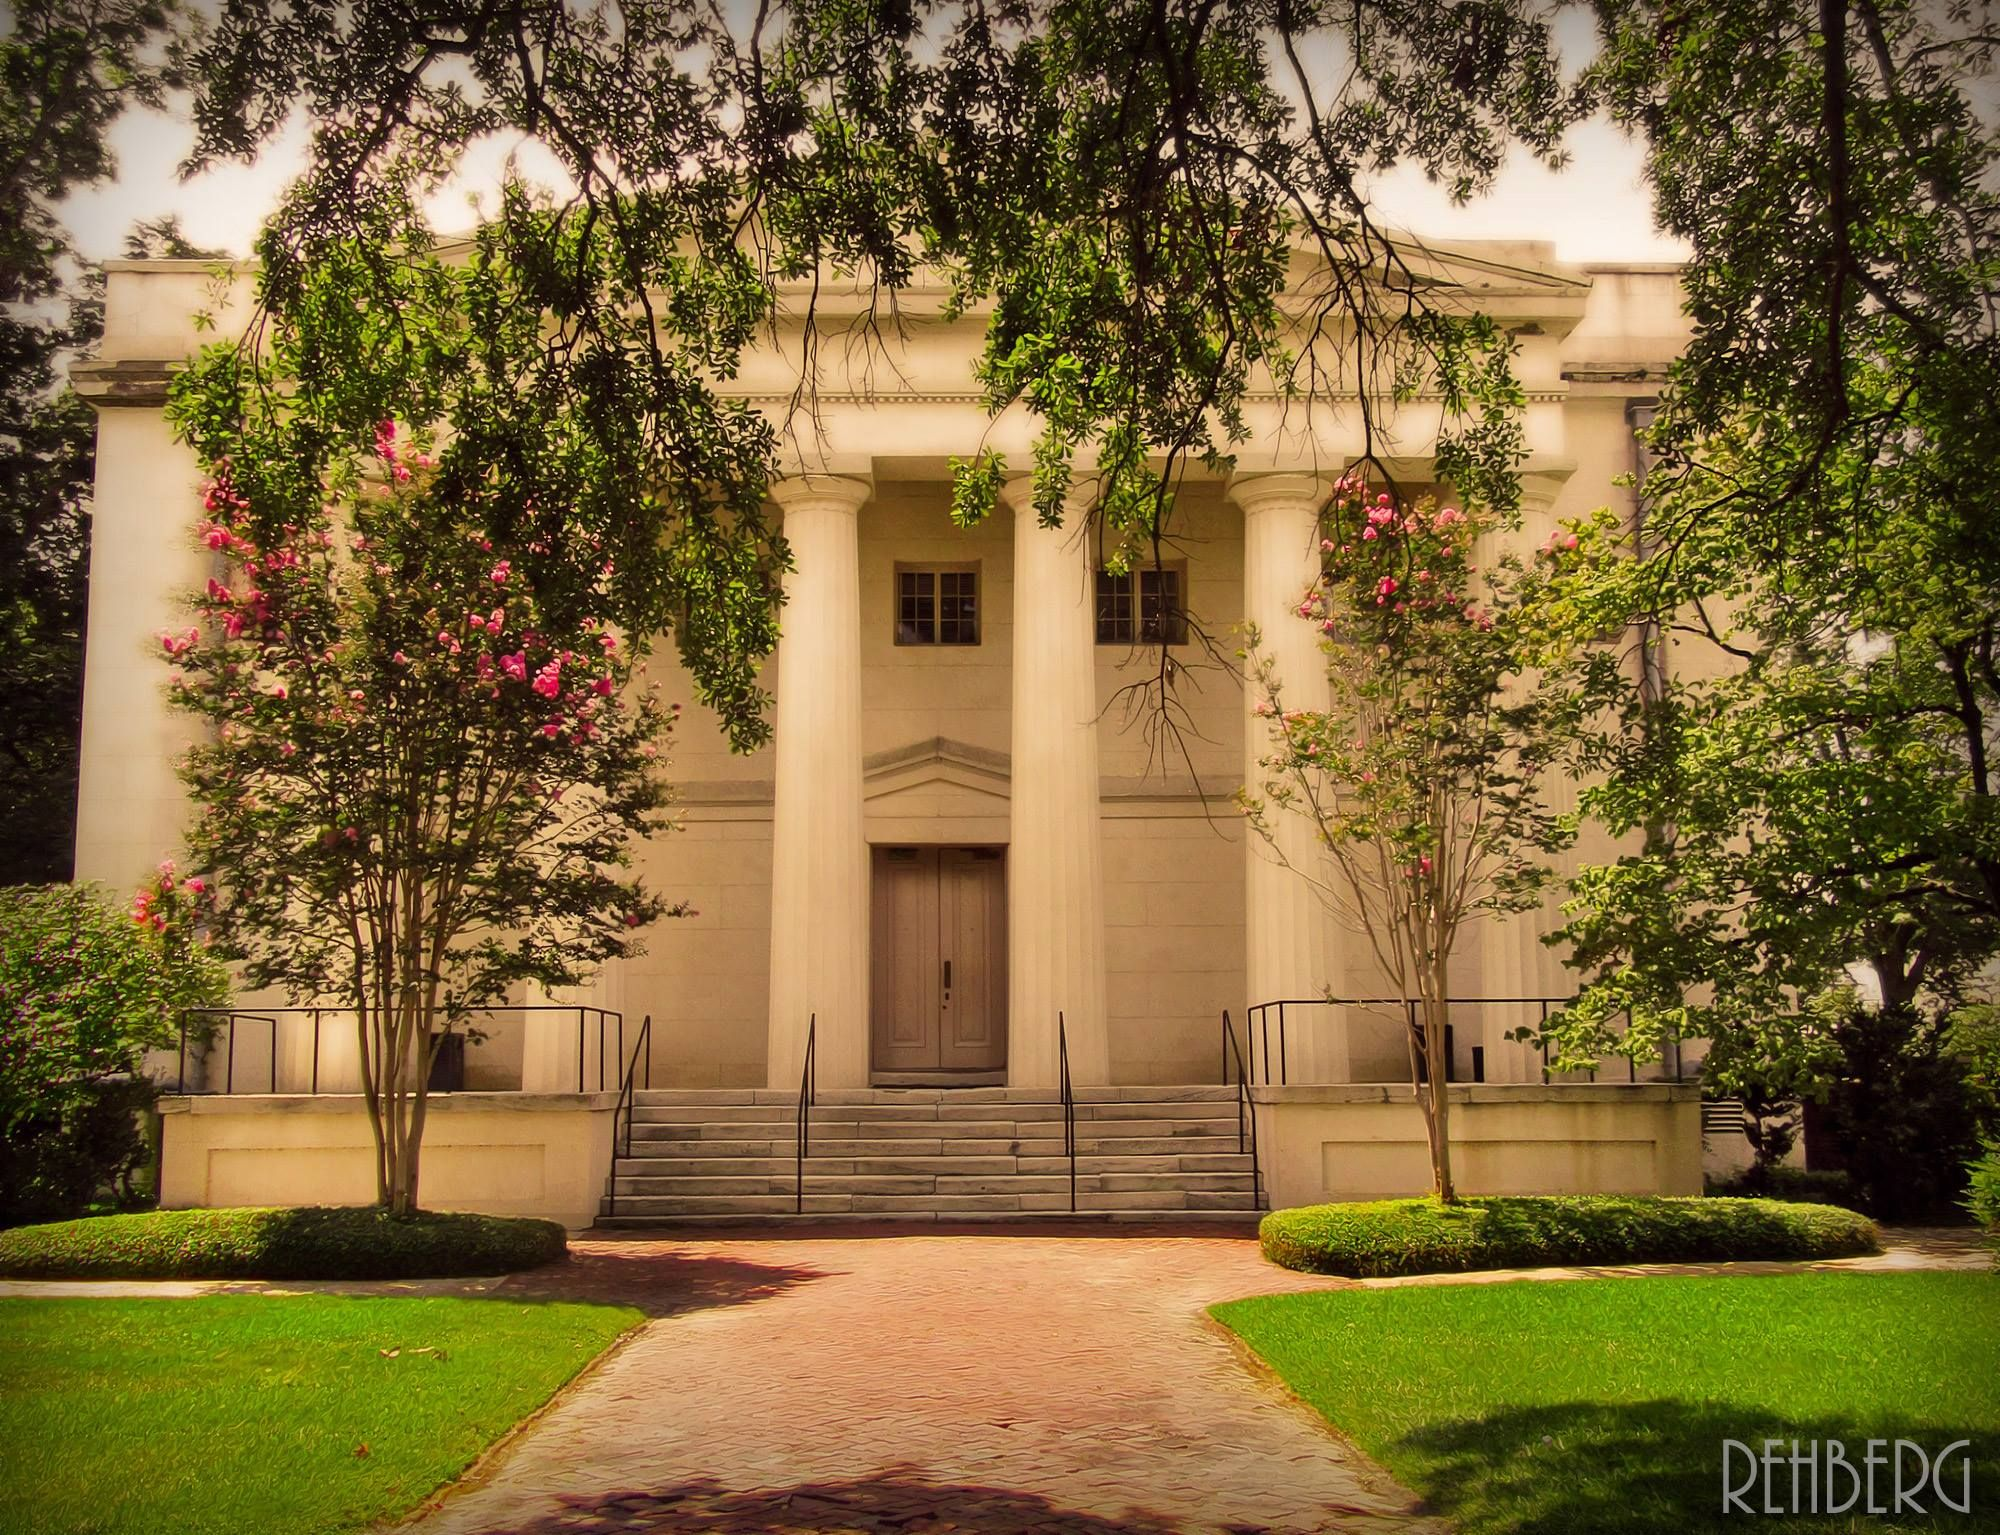 The old Medical College of Georgia in Olde Towne Augusta, GA ...